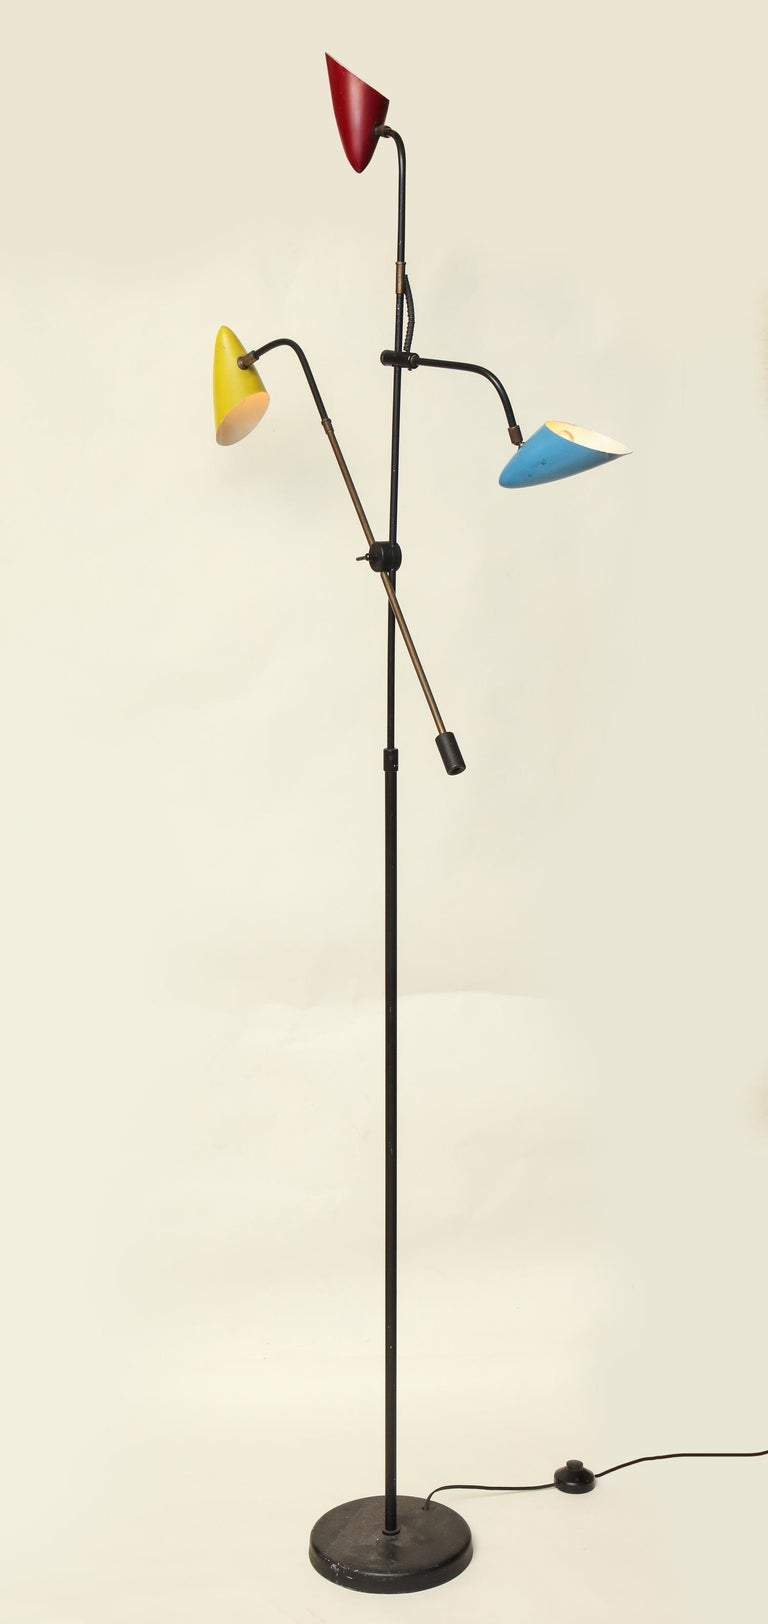 Floor Lamp Articulated Sculptural Mid-Century Modern, France, 1950s For Sale 2